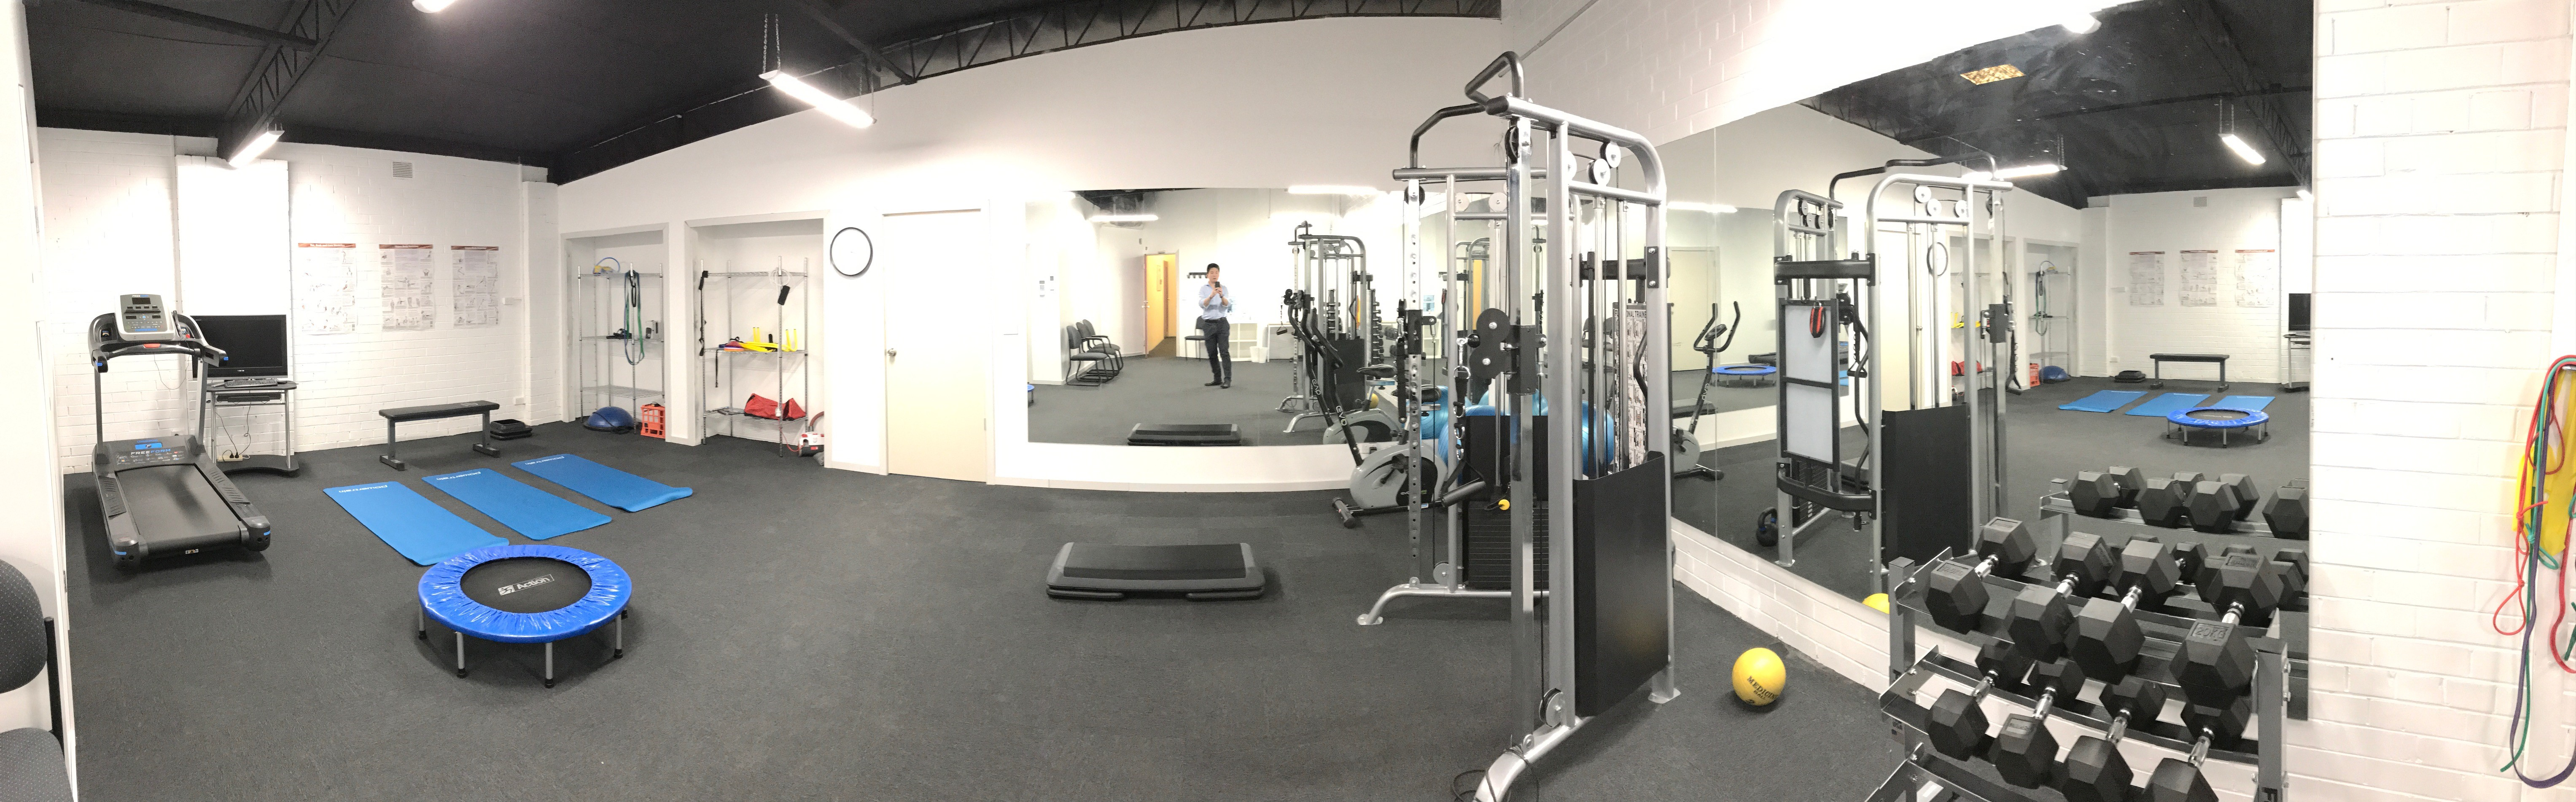 Functional gym and rehabilitation space